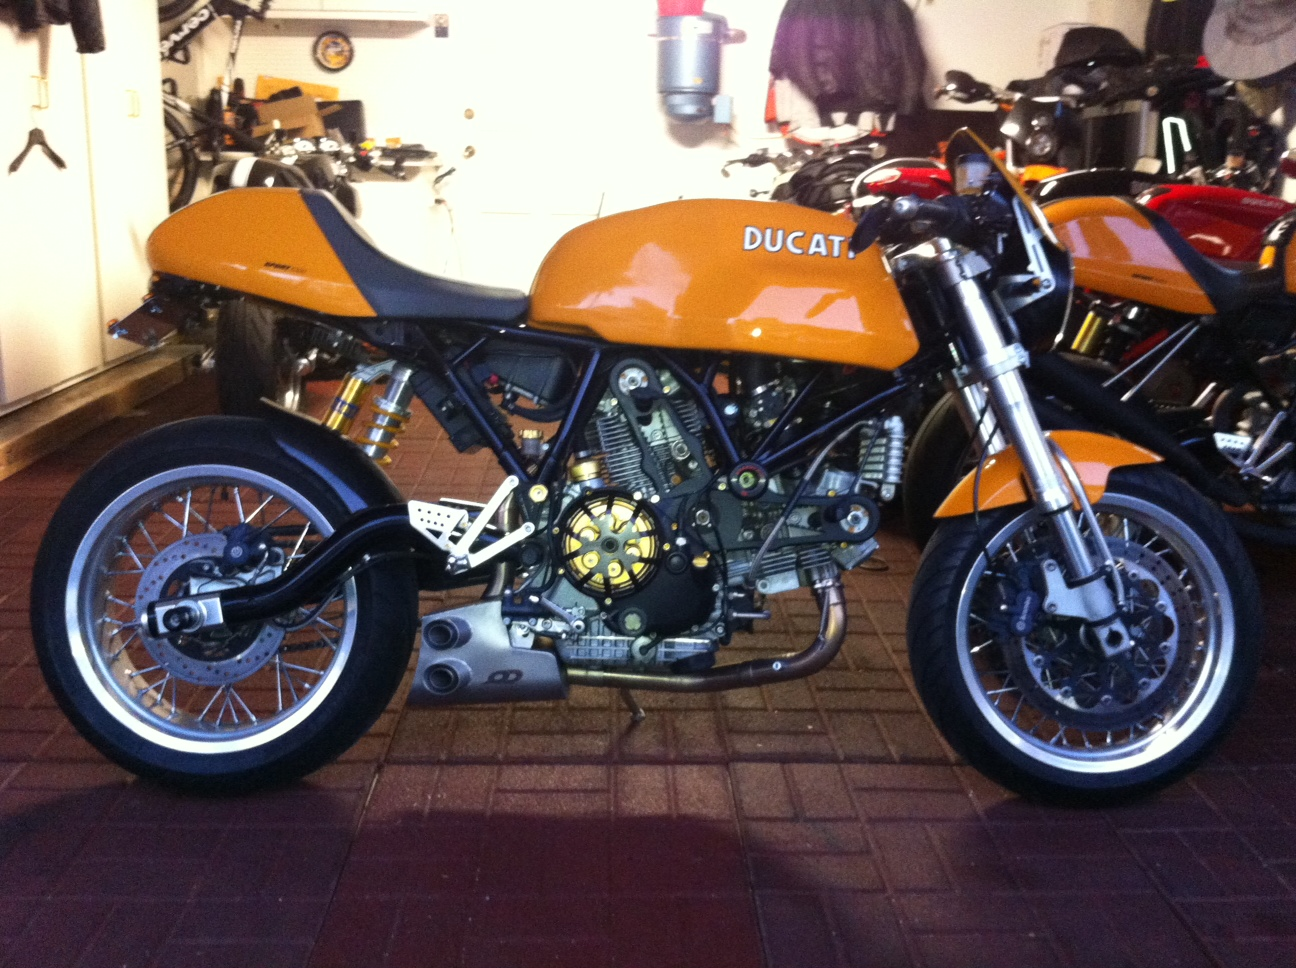 2006 ducati sport classic with qd exhaust - ducati.ms - the